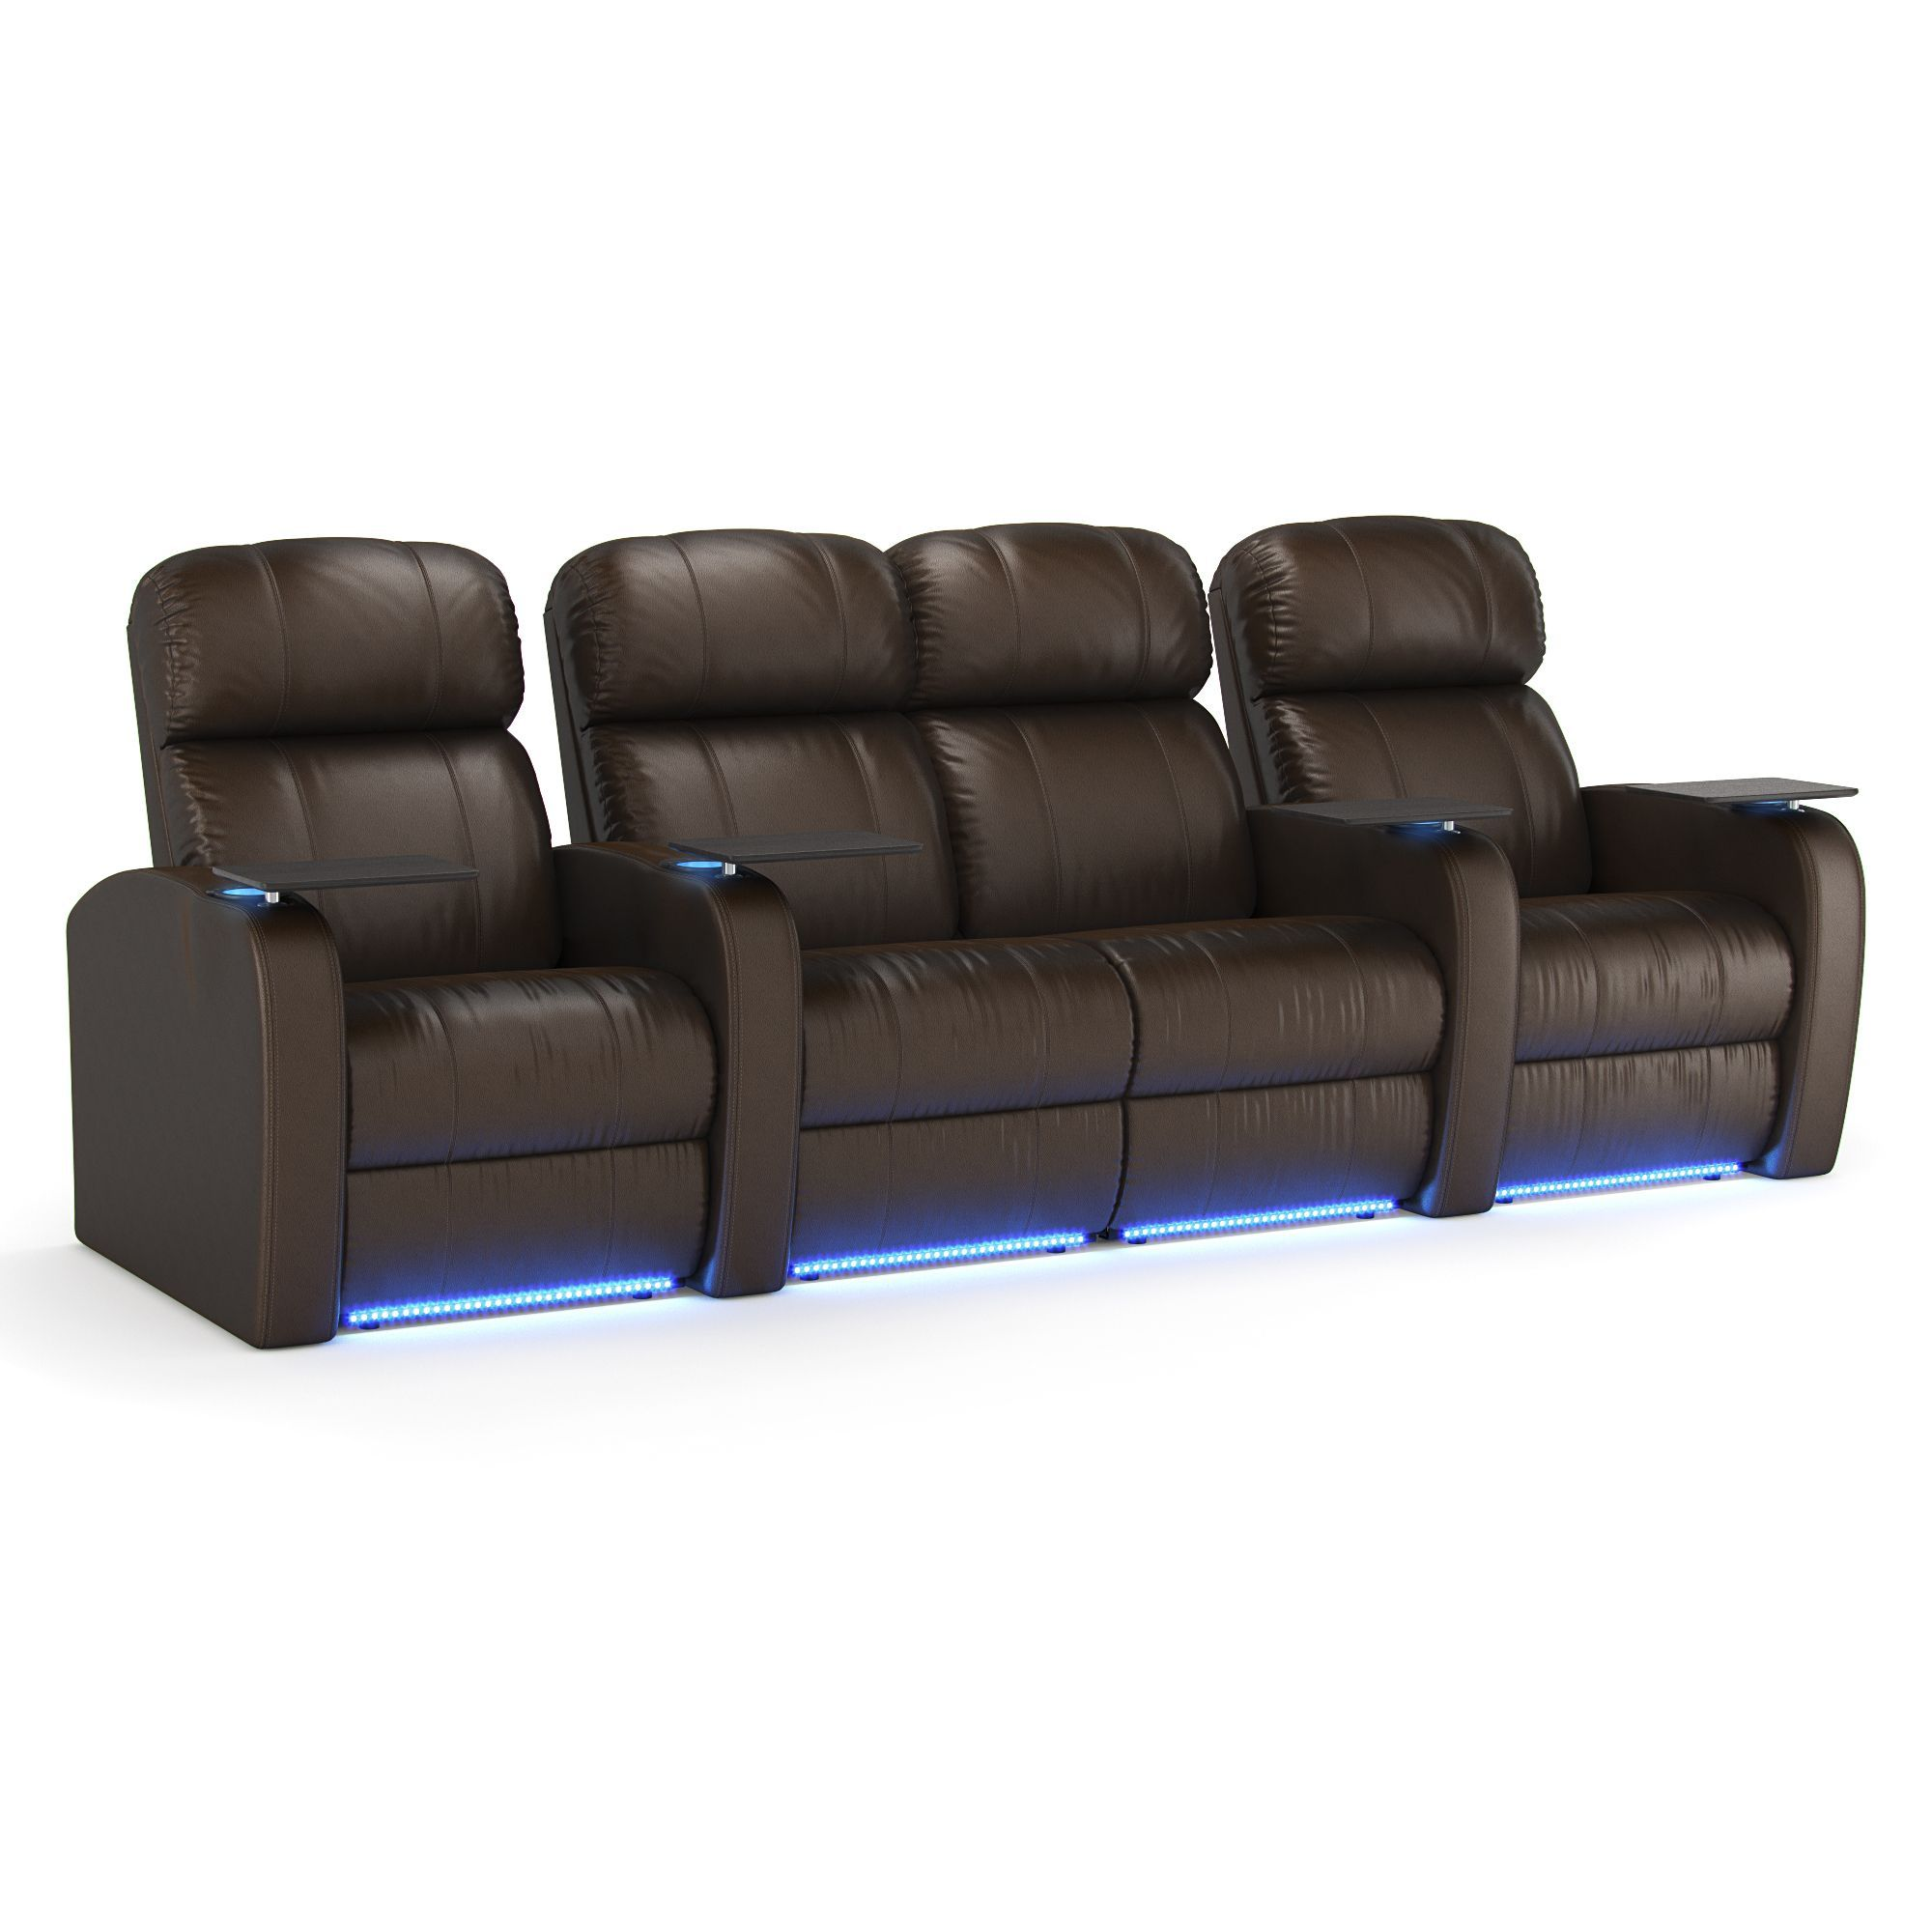 Octane Diesel Xs950 Seats Straight With Middle Loveseat Power Recline Brown Premium Leather